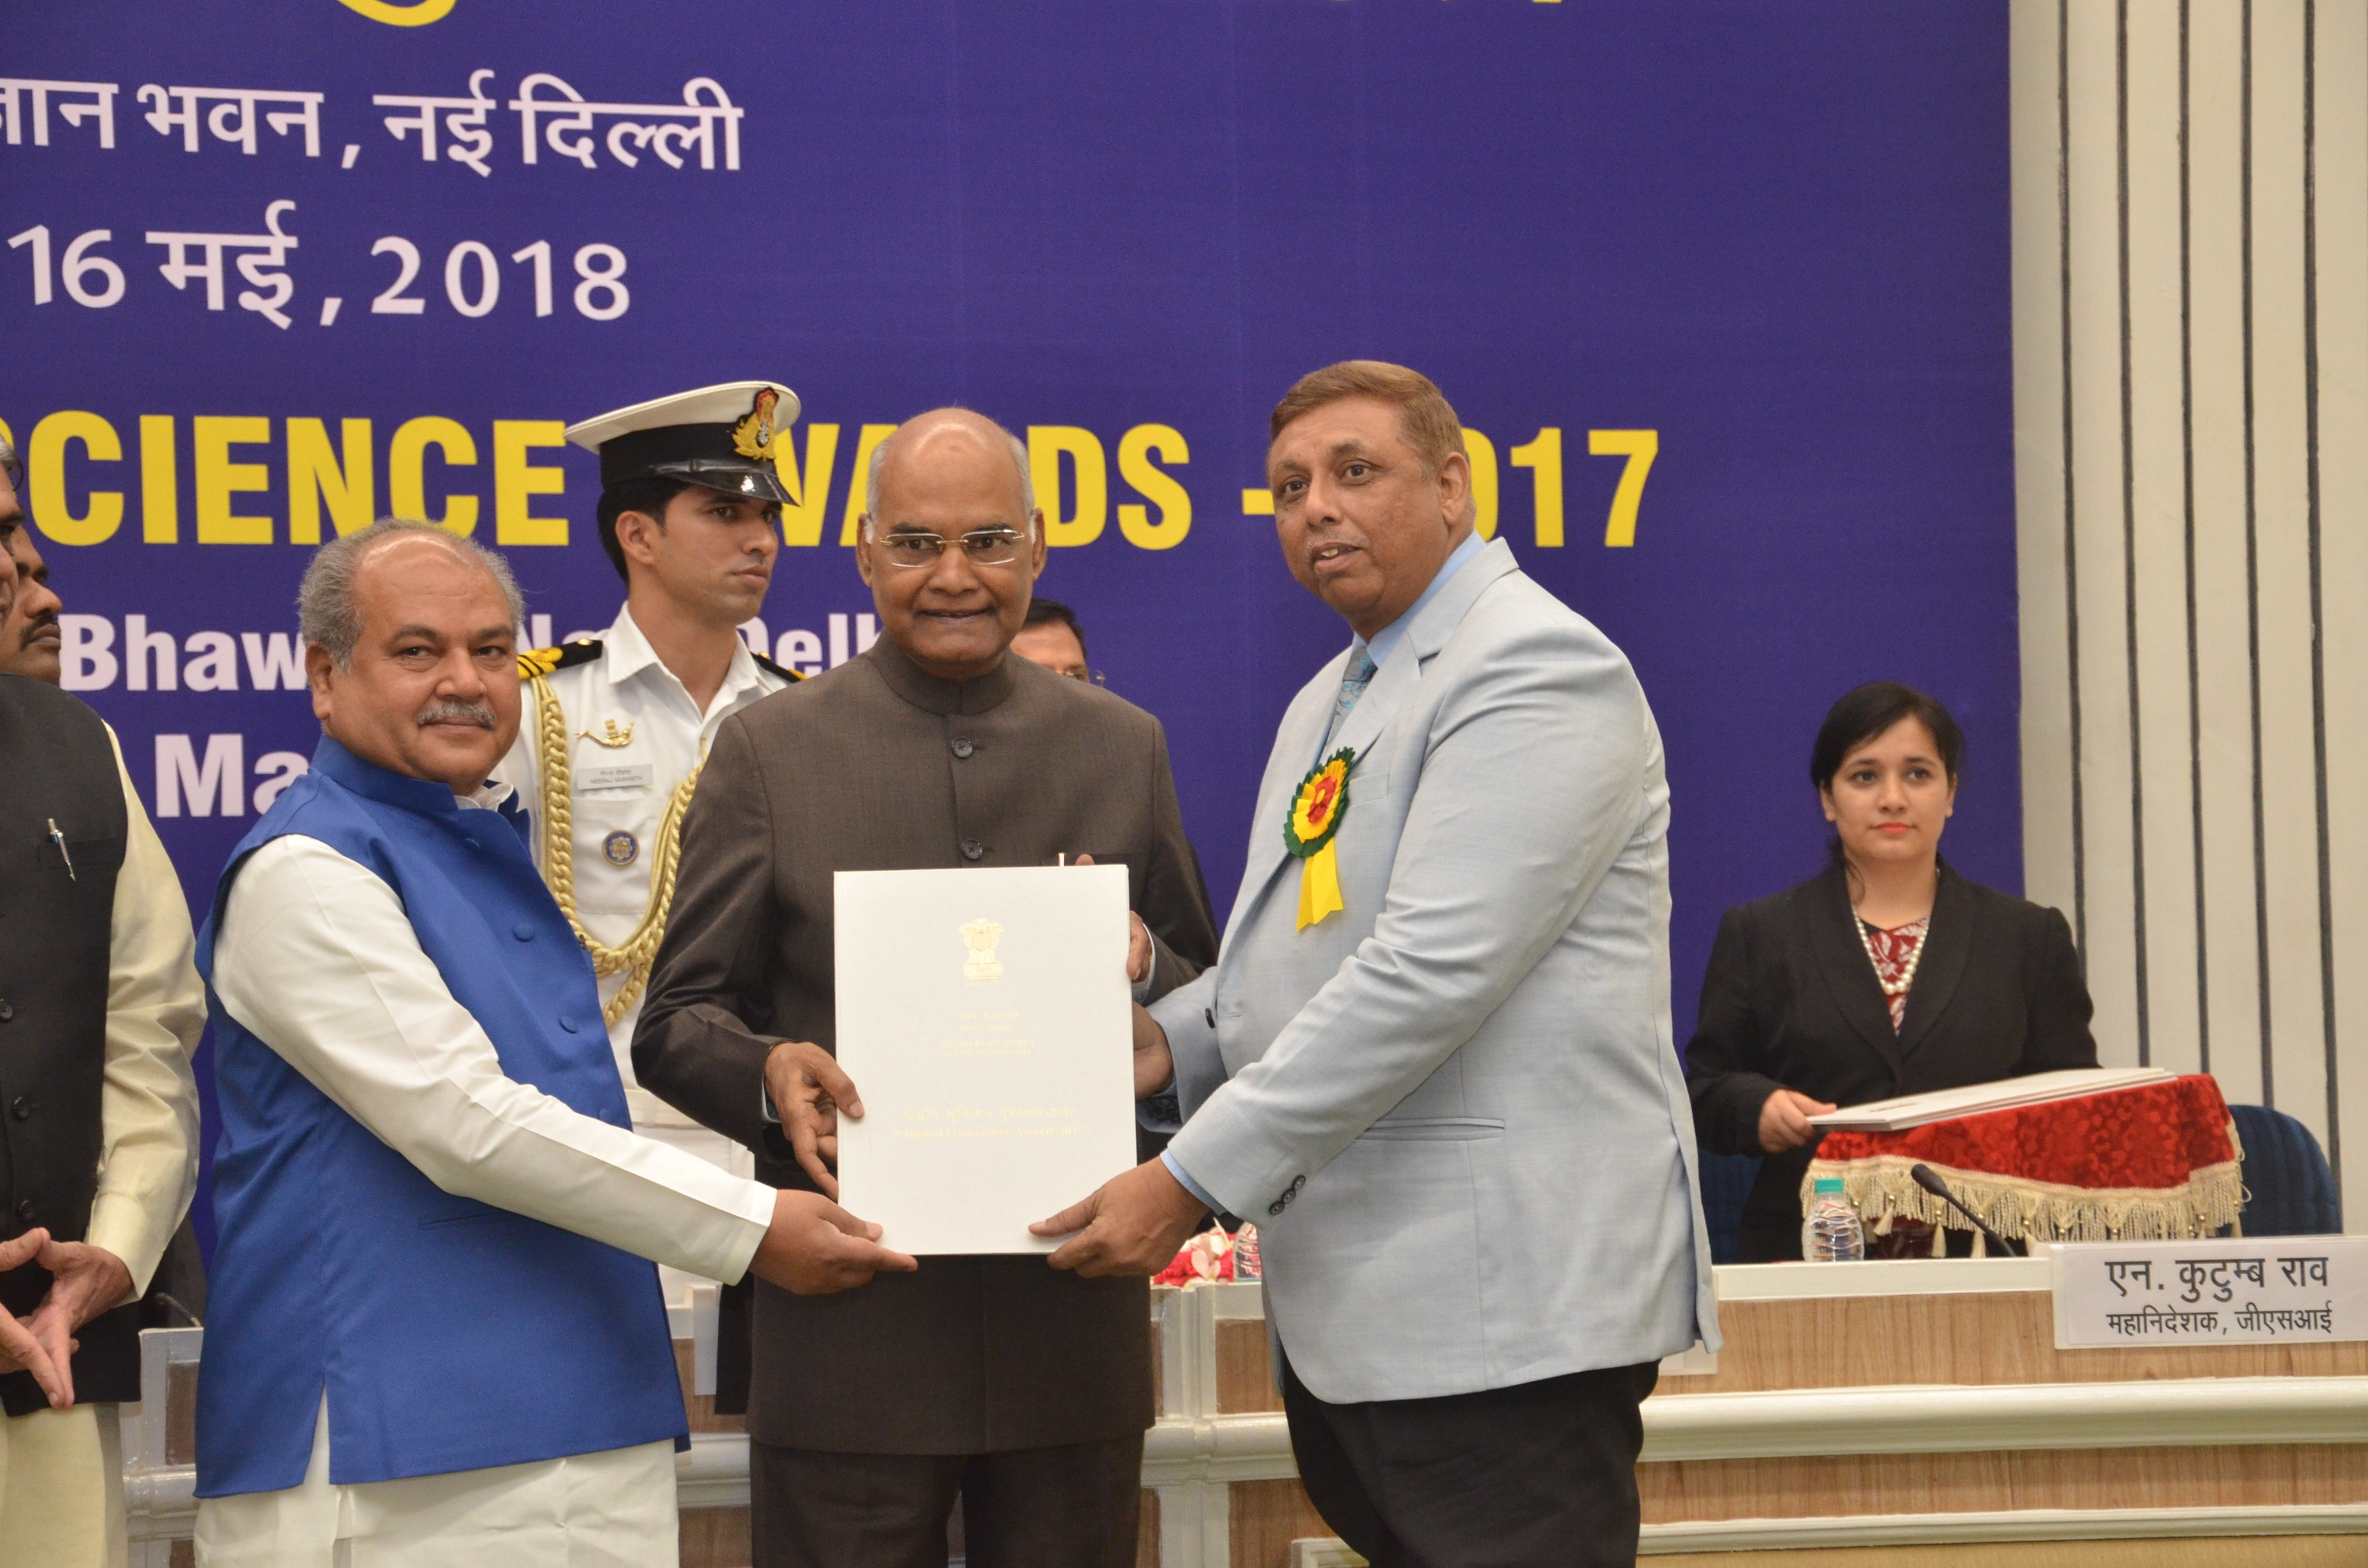 Dr. Shakeel Ahmed, Chief Scientist,CSIR- NGRI, Hyderabad, has been selected for the prestigious National Geoscience Award (earlier known as National Mineral Award) by the Ministry of Mines, Govt. of India for the year 2017 for their significant contributions in the field of Groundwater Exploration (including project development, hydrogeological studies and management of groundwater resources) Team Award.